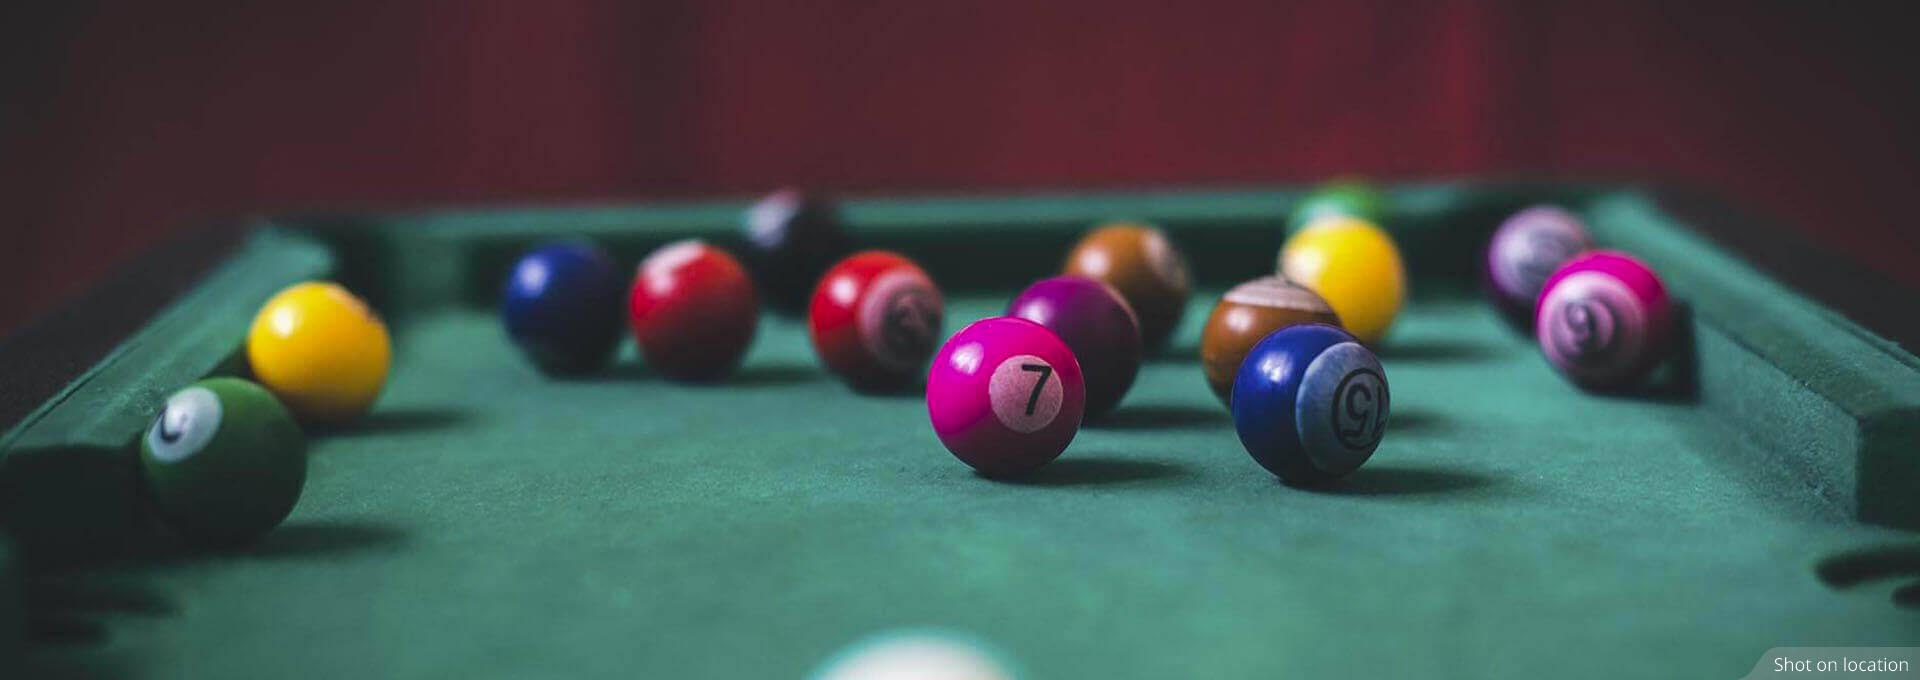 Pool Billiards near Cottages by House of Hiranandani in Devanahalli, Bengaluru